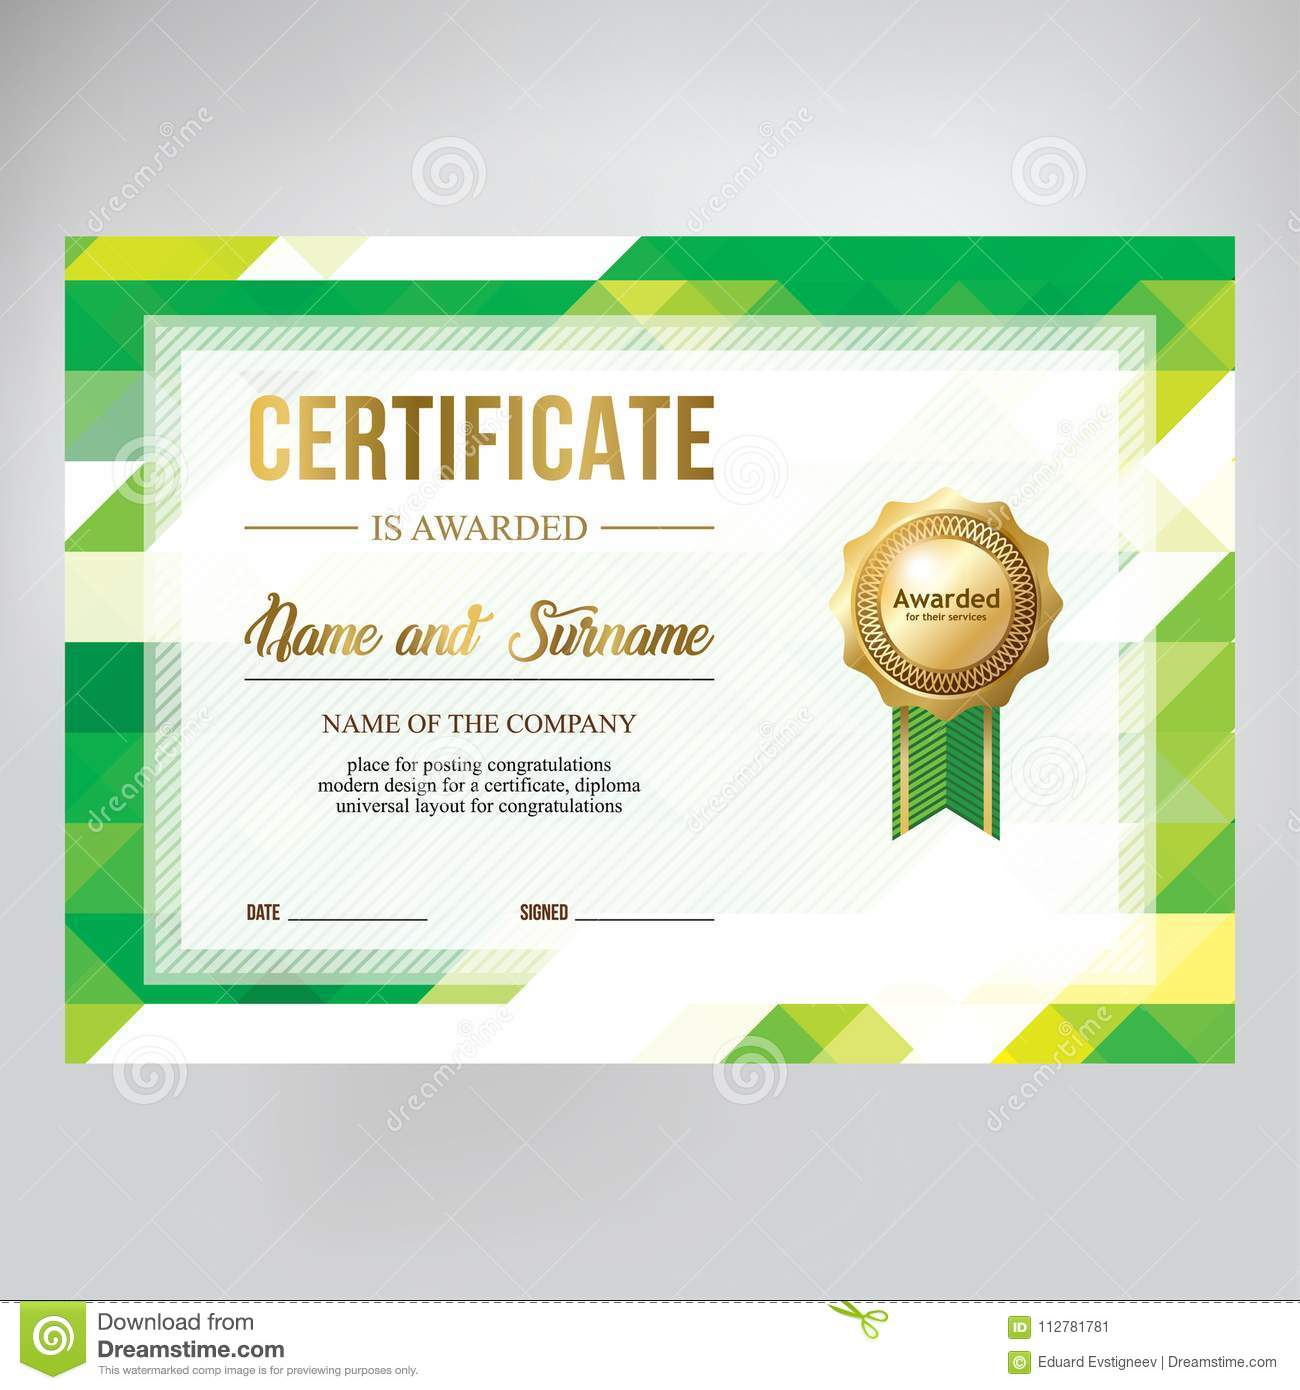 gift certificate design honorary diploma creative geometric green background